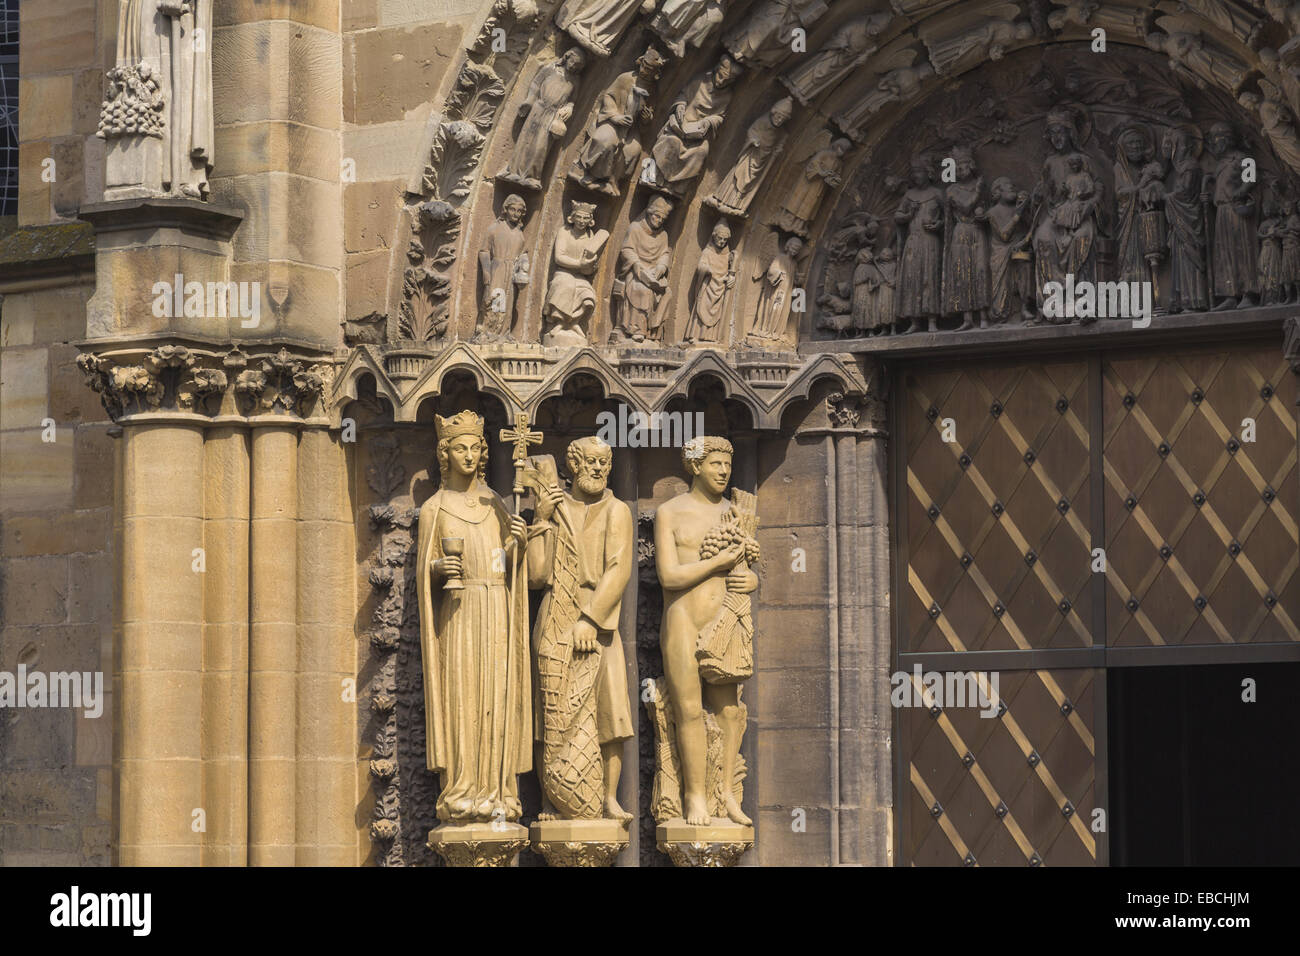 13th century age Aged architecture art belief building Christian Christianity church Church of Our Lady close-up - Stock Image